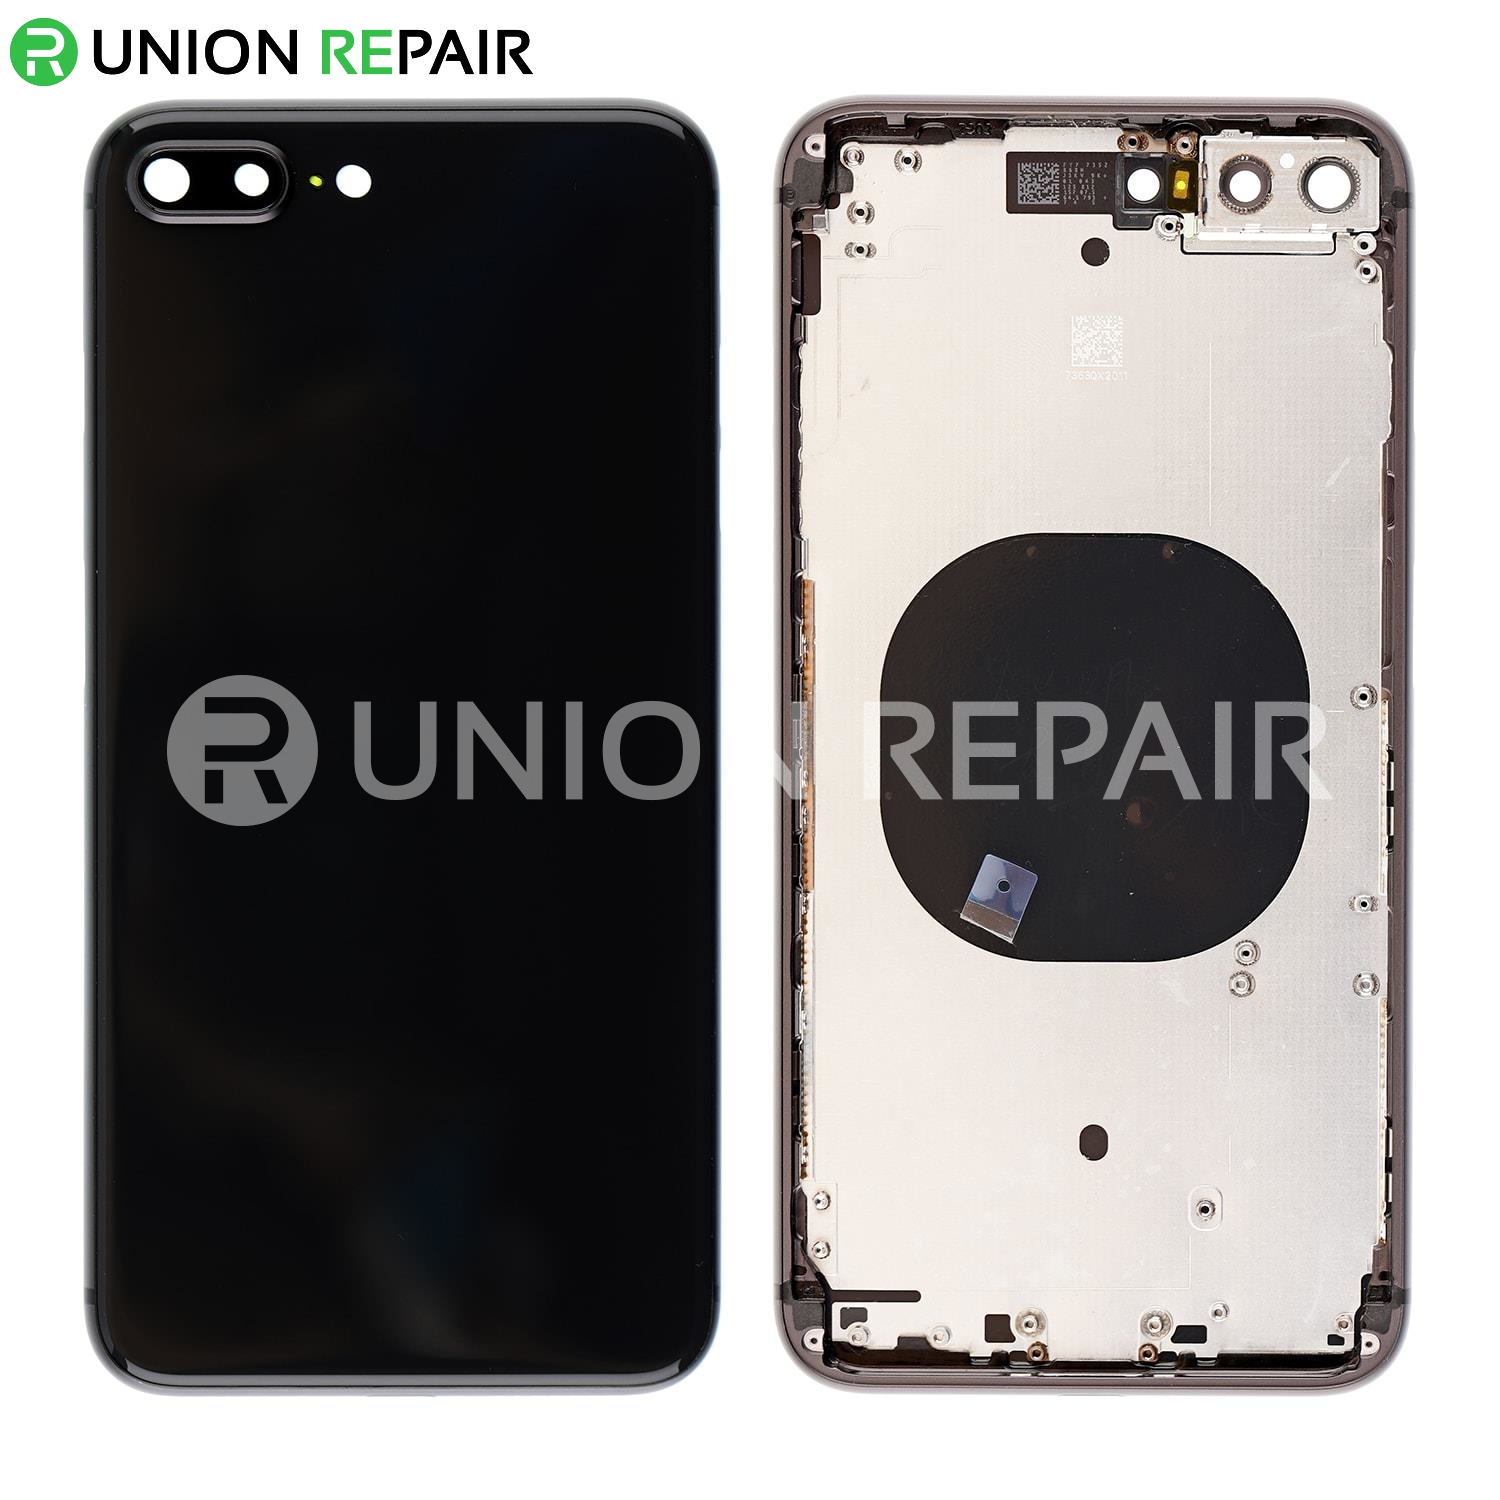 Iphone S Plus Back Housing Replacement